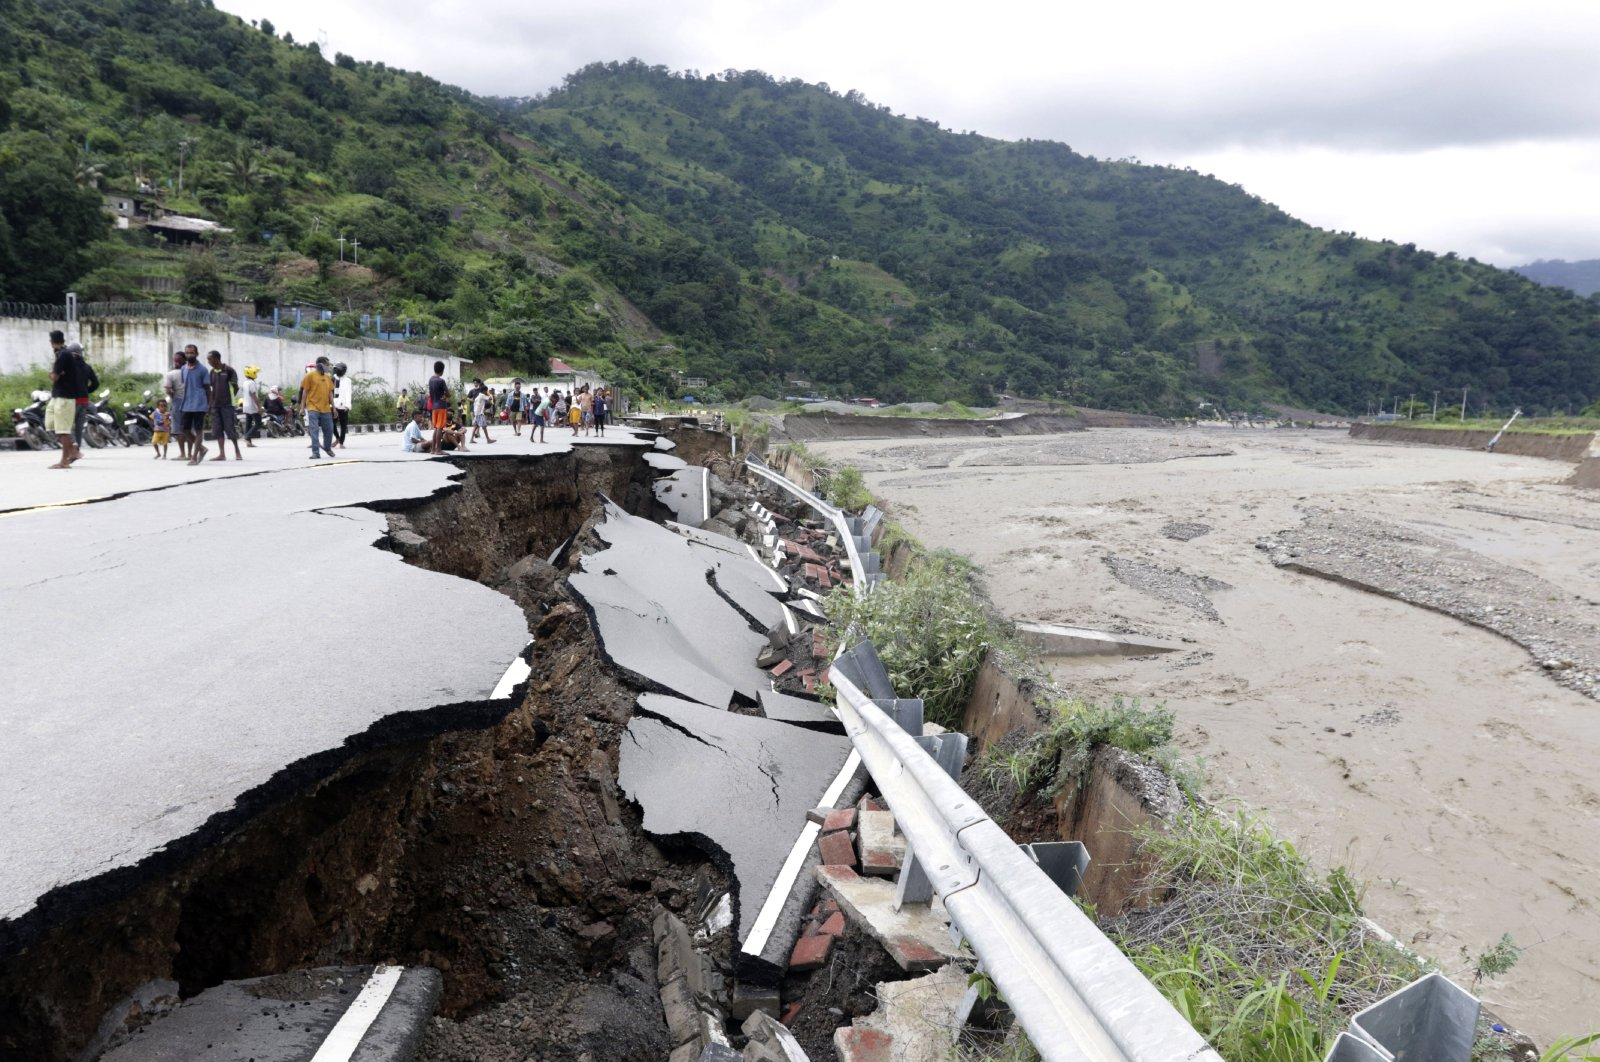 Residents inspect a damaged road following a flood in Dili, East Timor, April 5, 2021. (AP Photo)